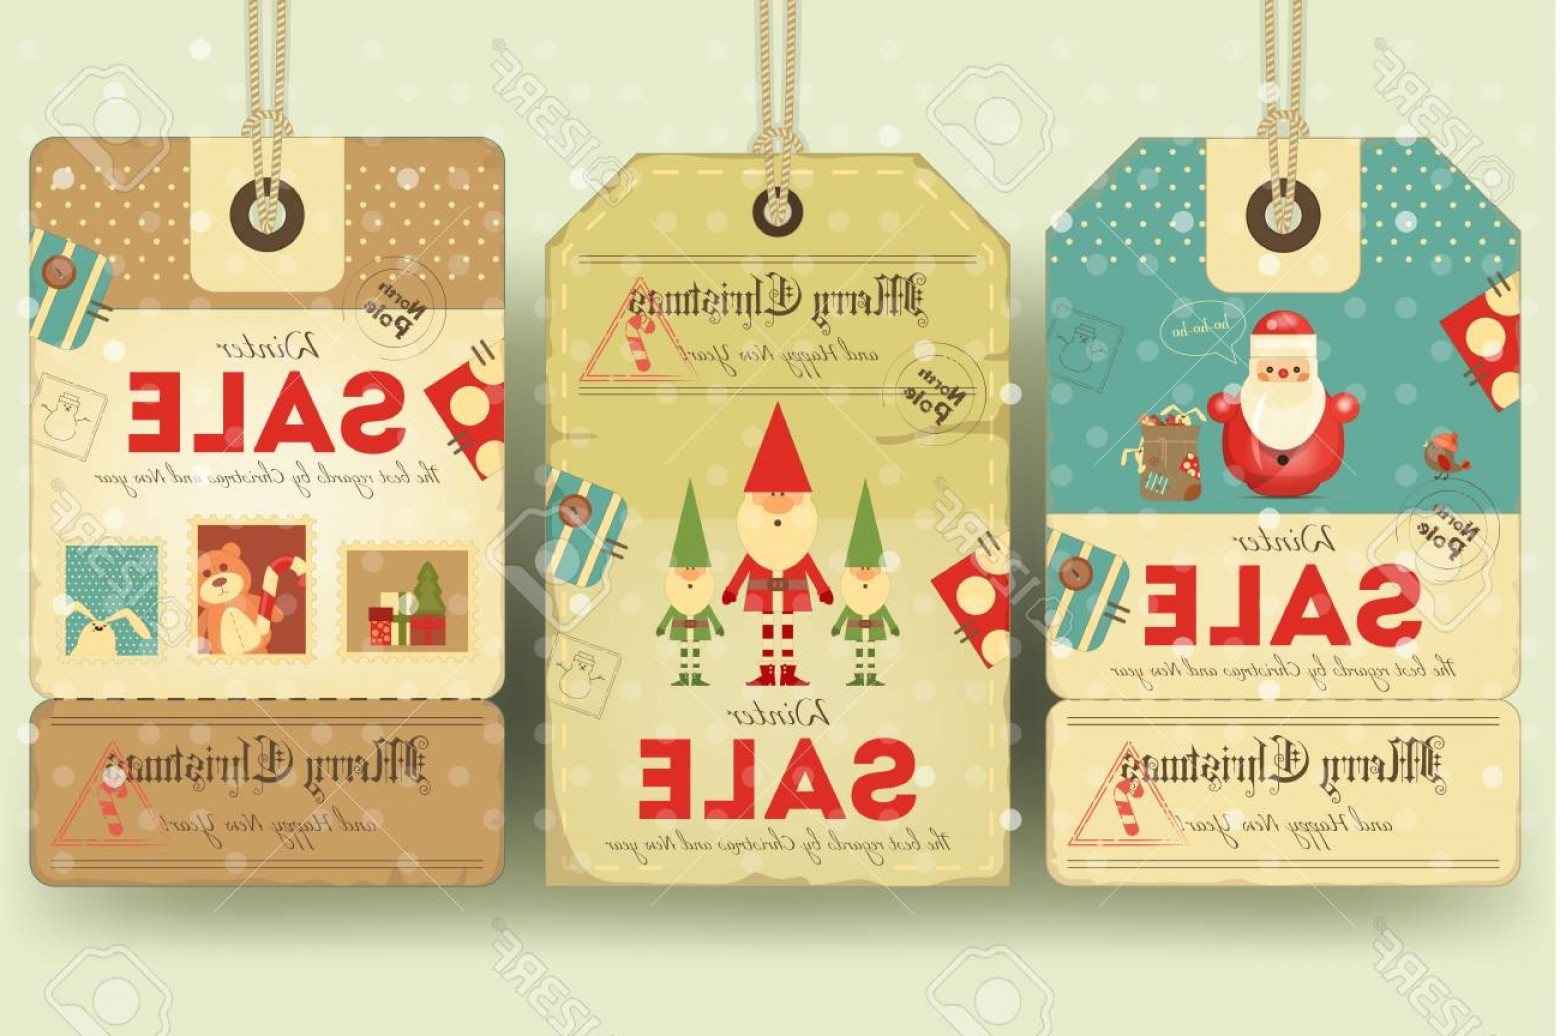 Vintage Xmas Sale Tag Vector: Photostock Vector Christmas Sale Tags In Retro Style With Xmas Symbols Santa Claus Elves Winter Sell Out Labels Collec